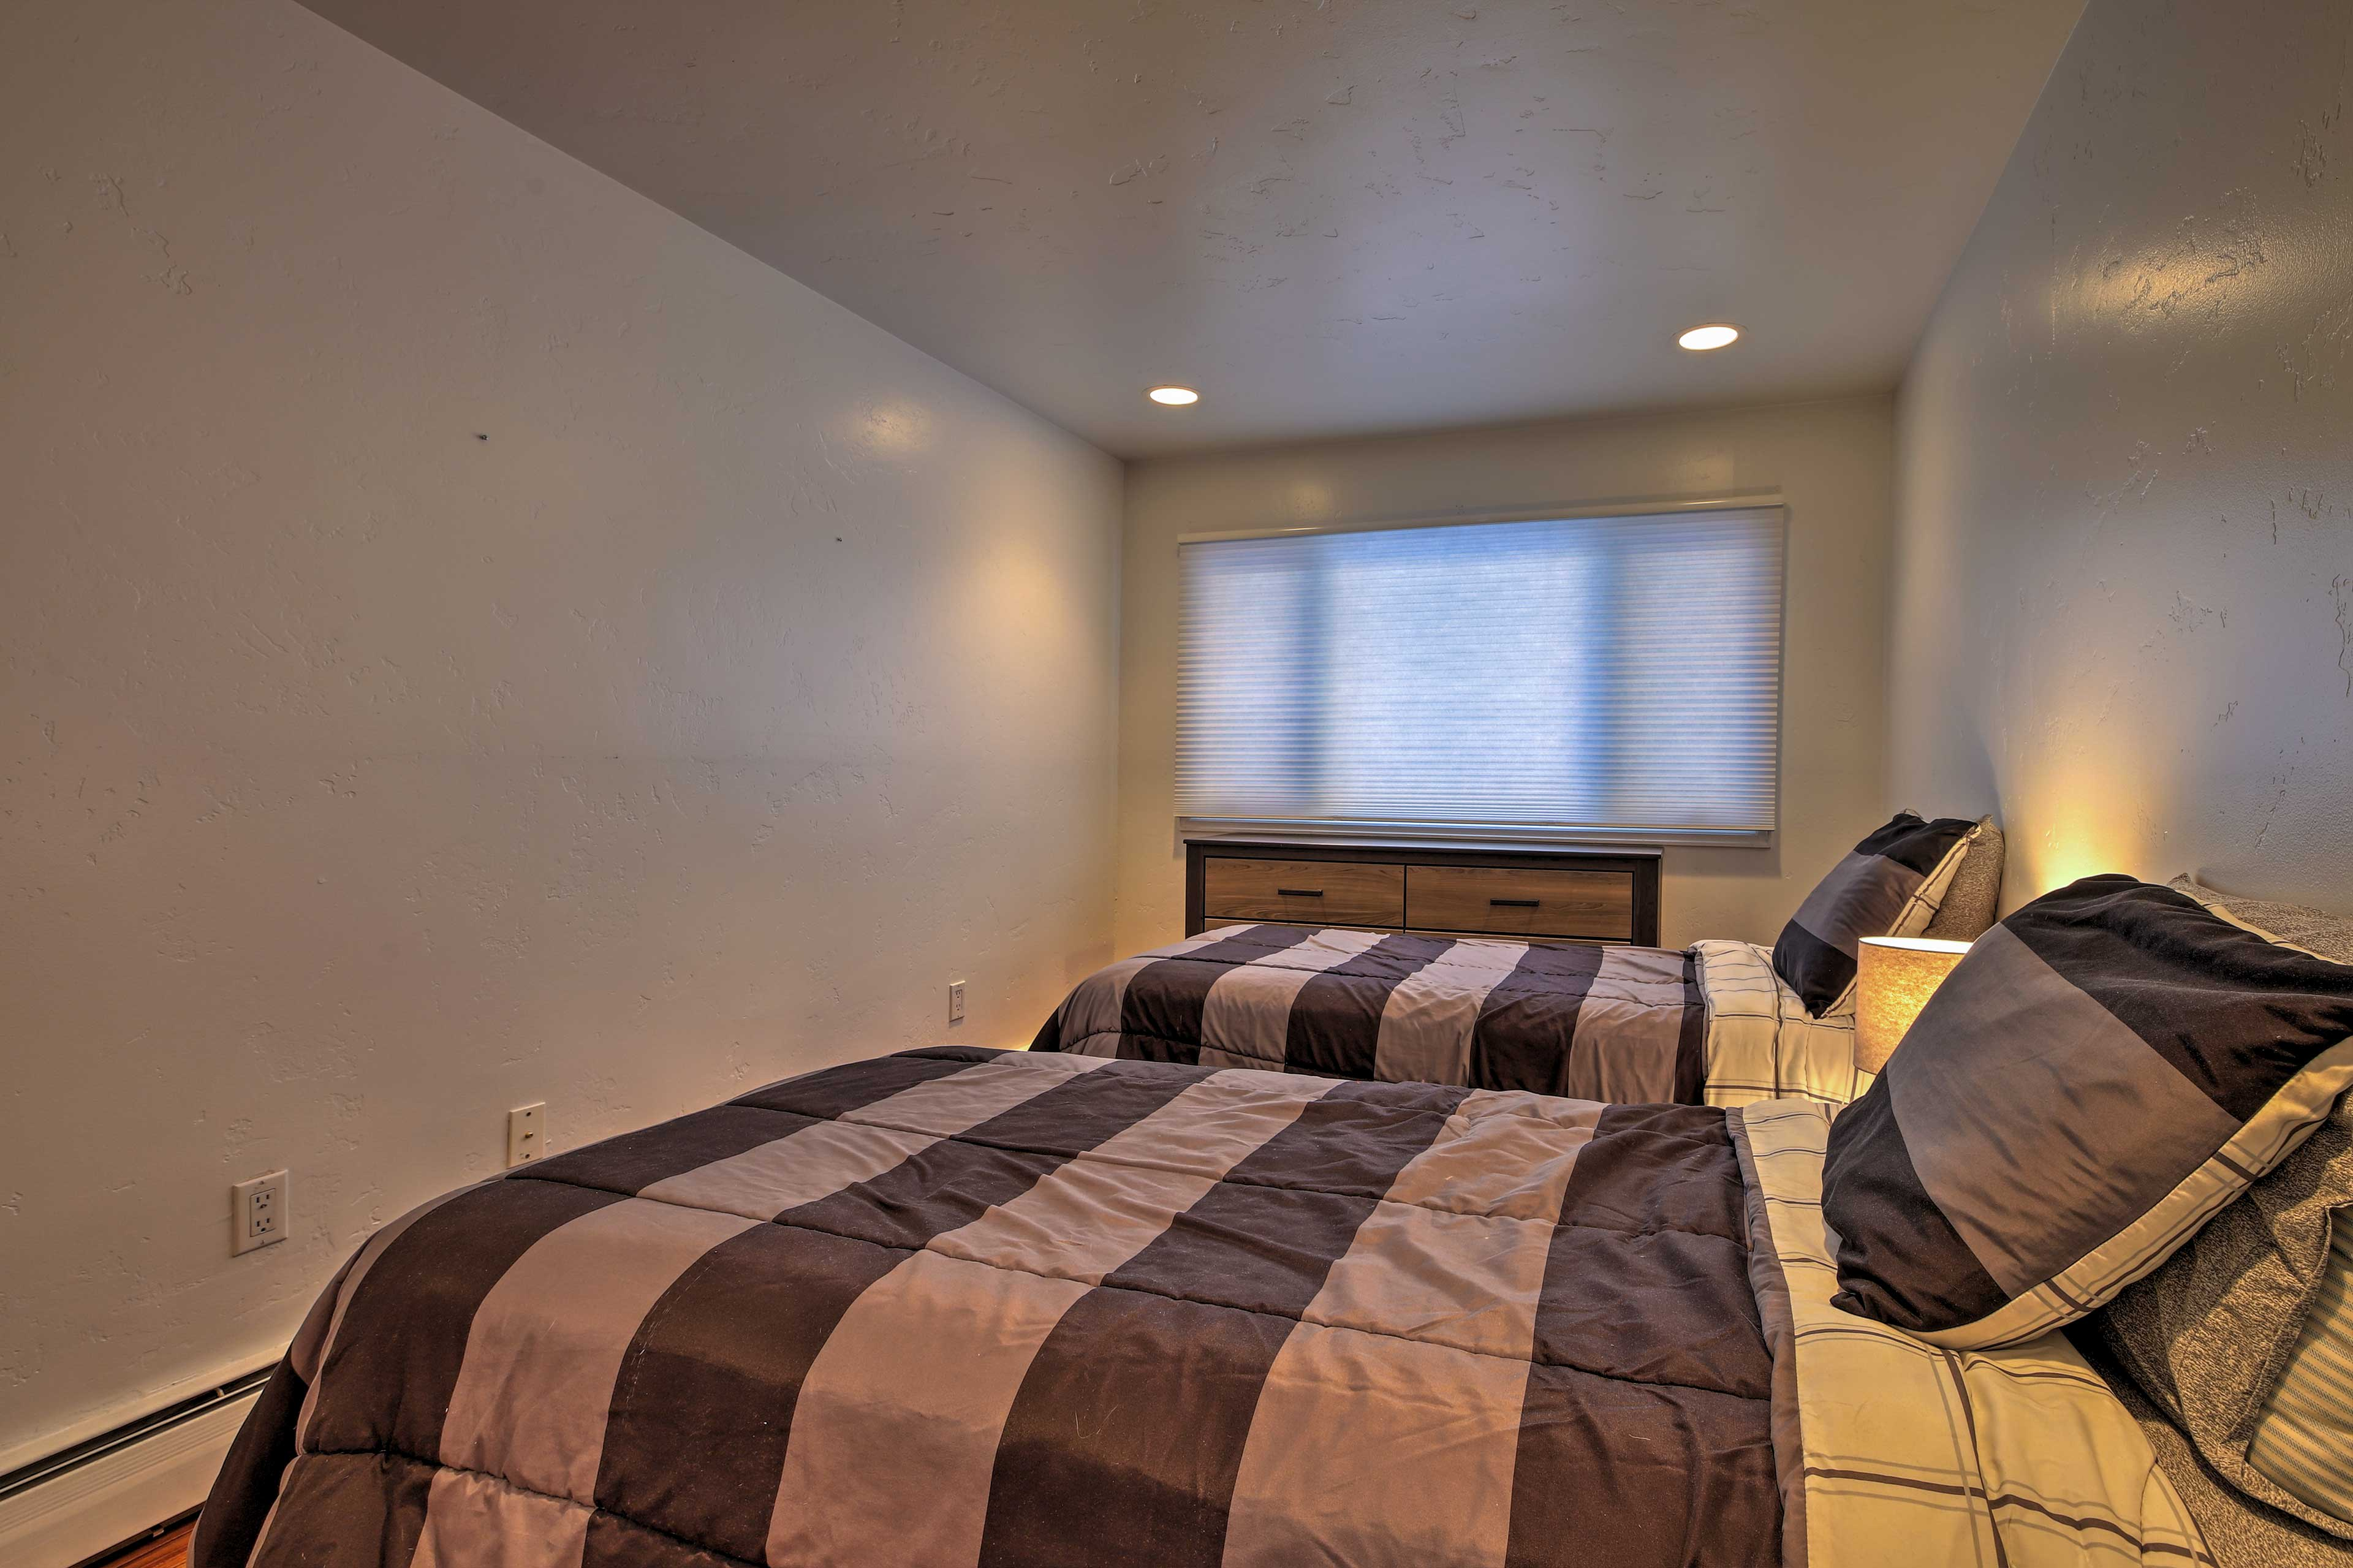 The second bedroom is equipped with 2 twin-sized beds.